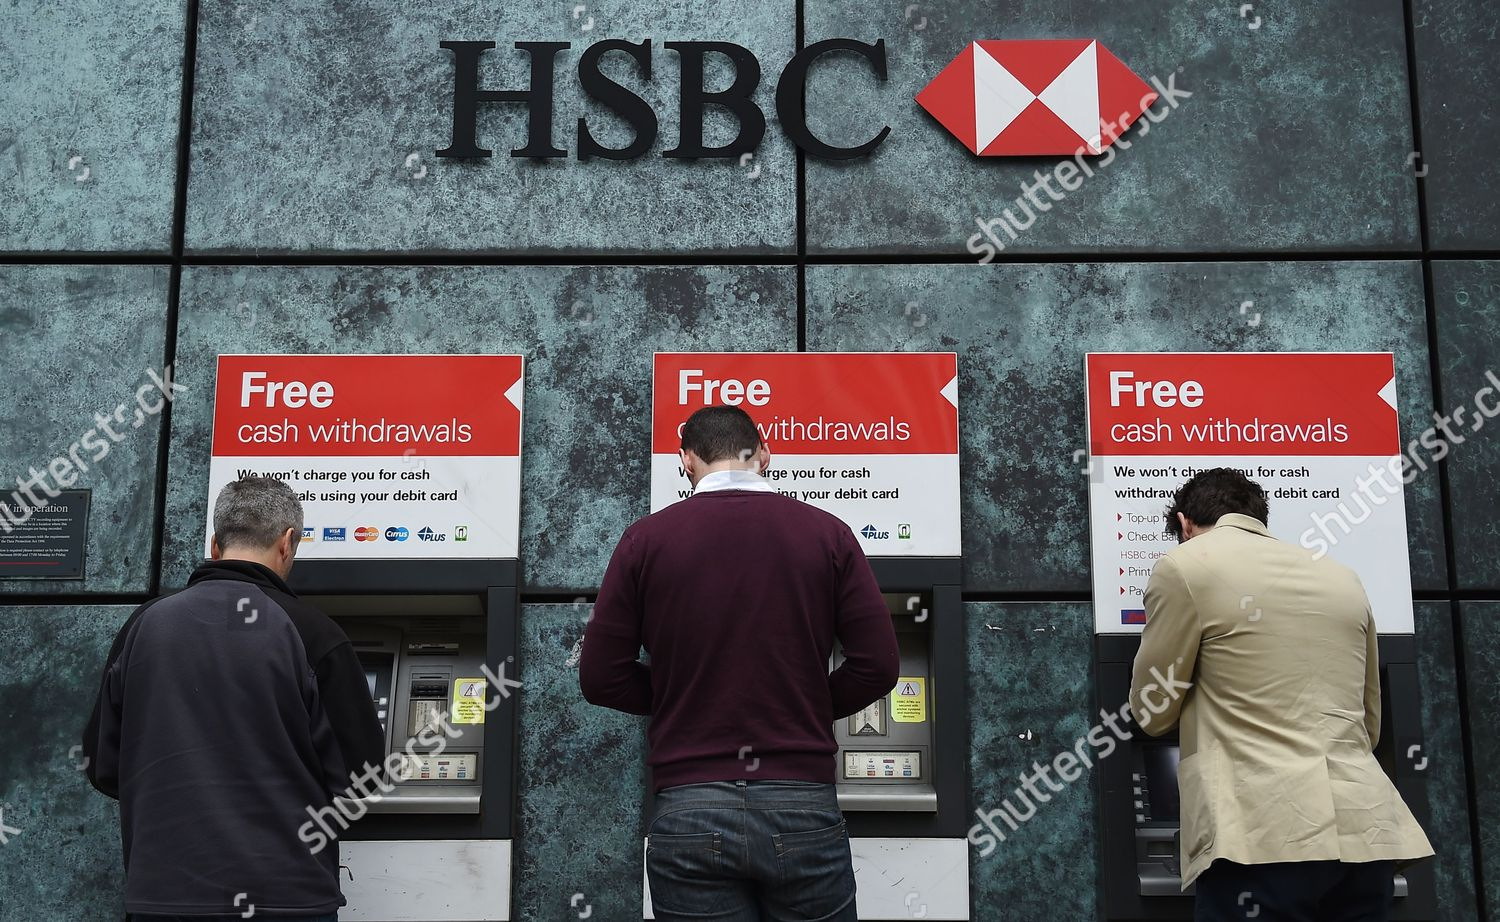 Customers Use Atm Machines Hsbcs City London Editorial Stock